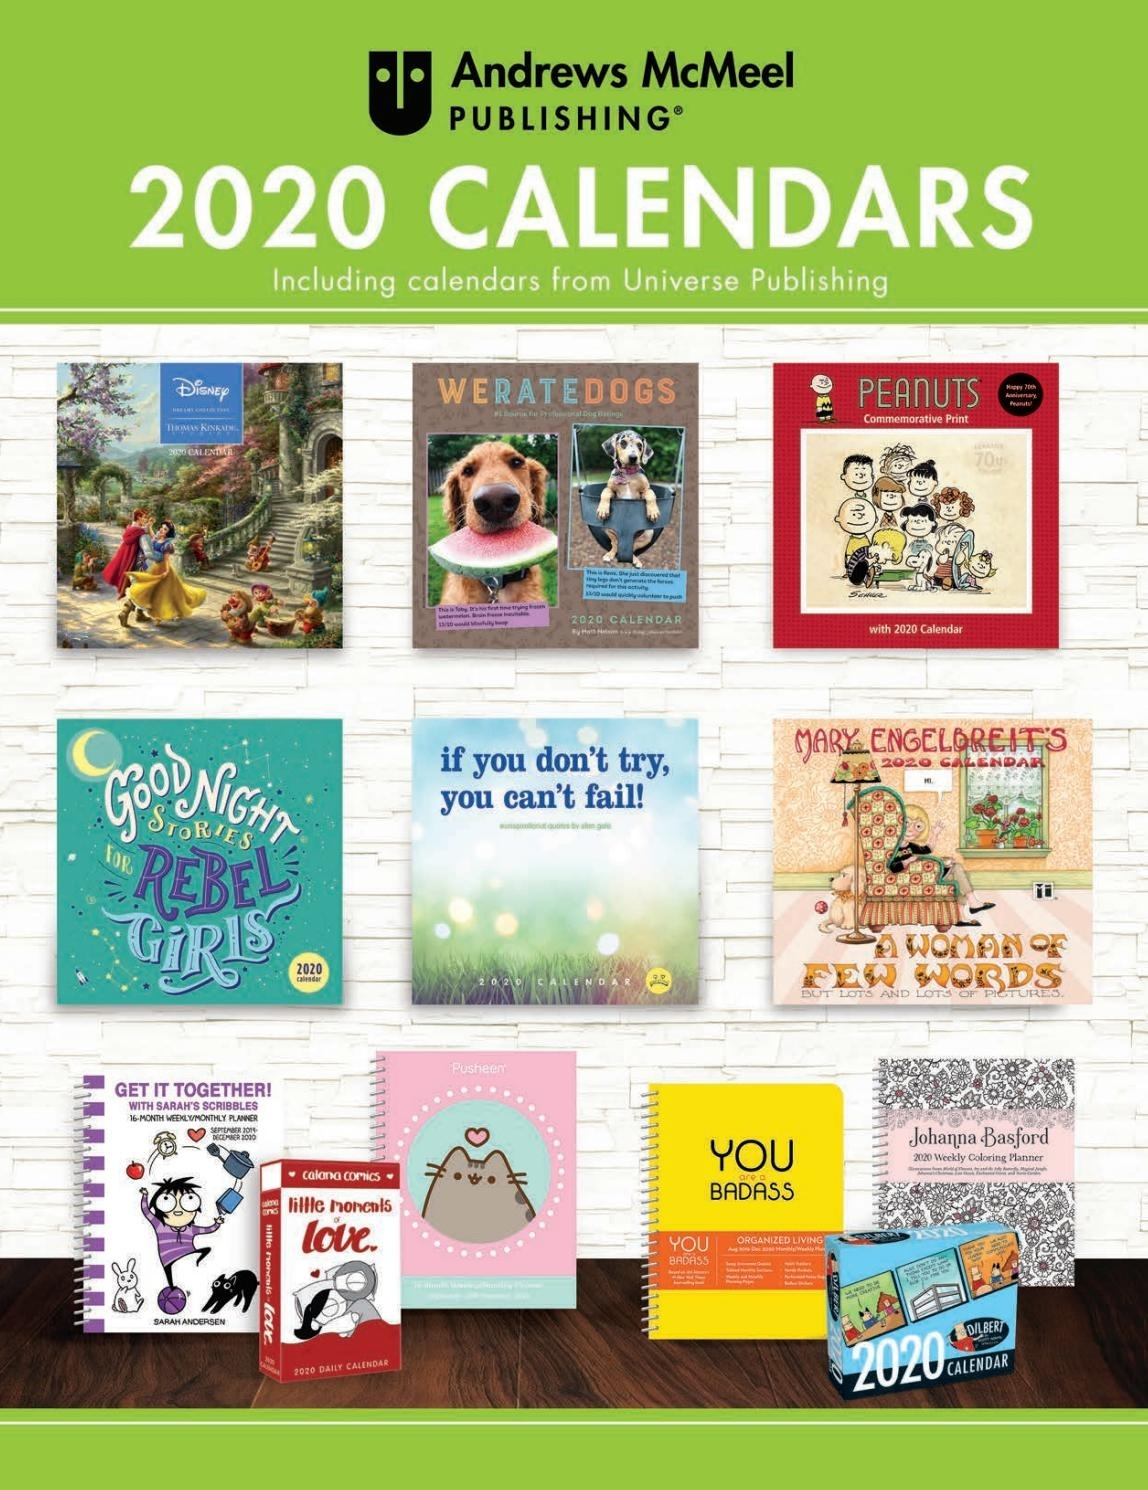 Andrews Mcmeel Publishing 2020 Calendar Catalogandrews within Jan 2020 Calendar For Stephen F Austin